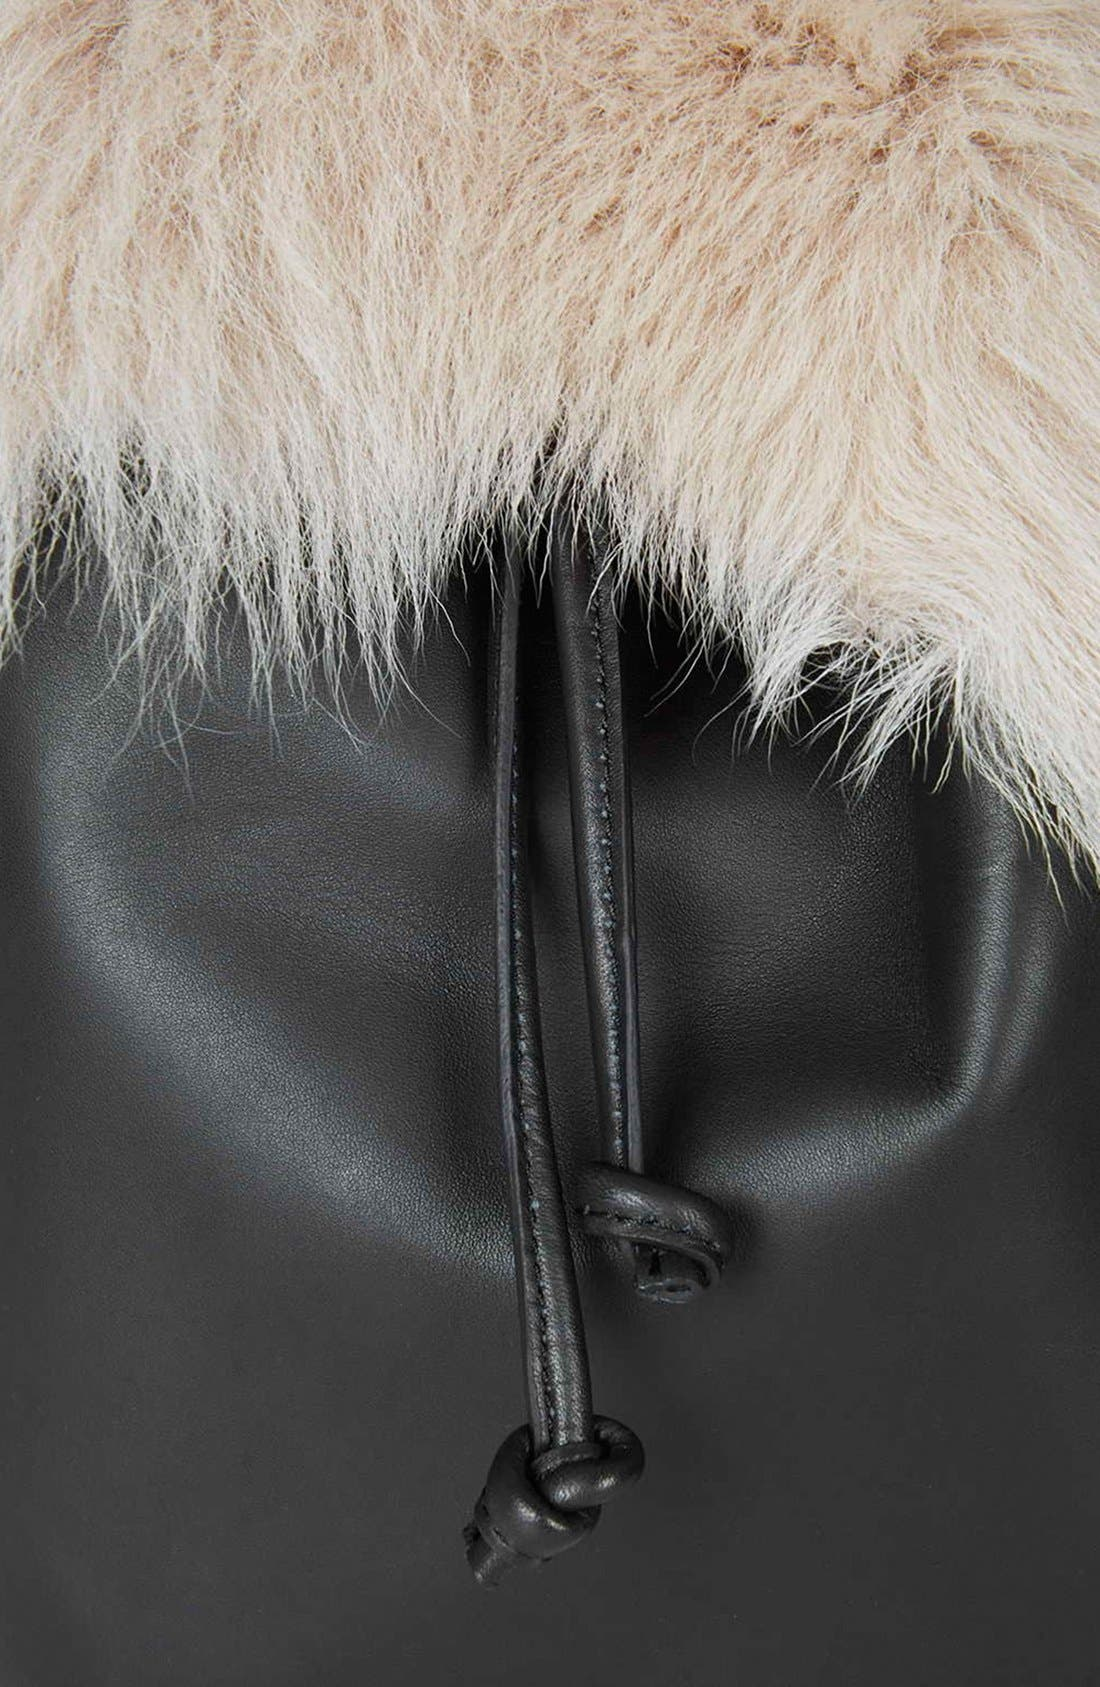 Shearling & Leather Backpack,                             Alternate thumbnail 2, color,                             250